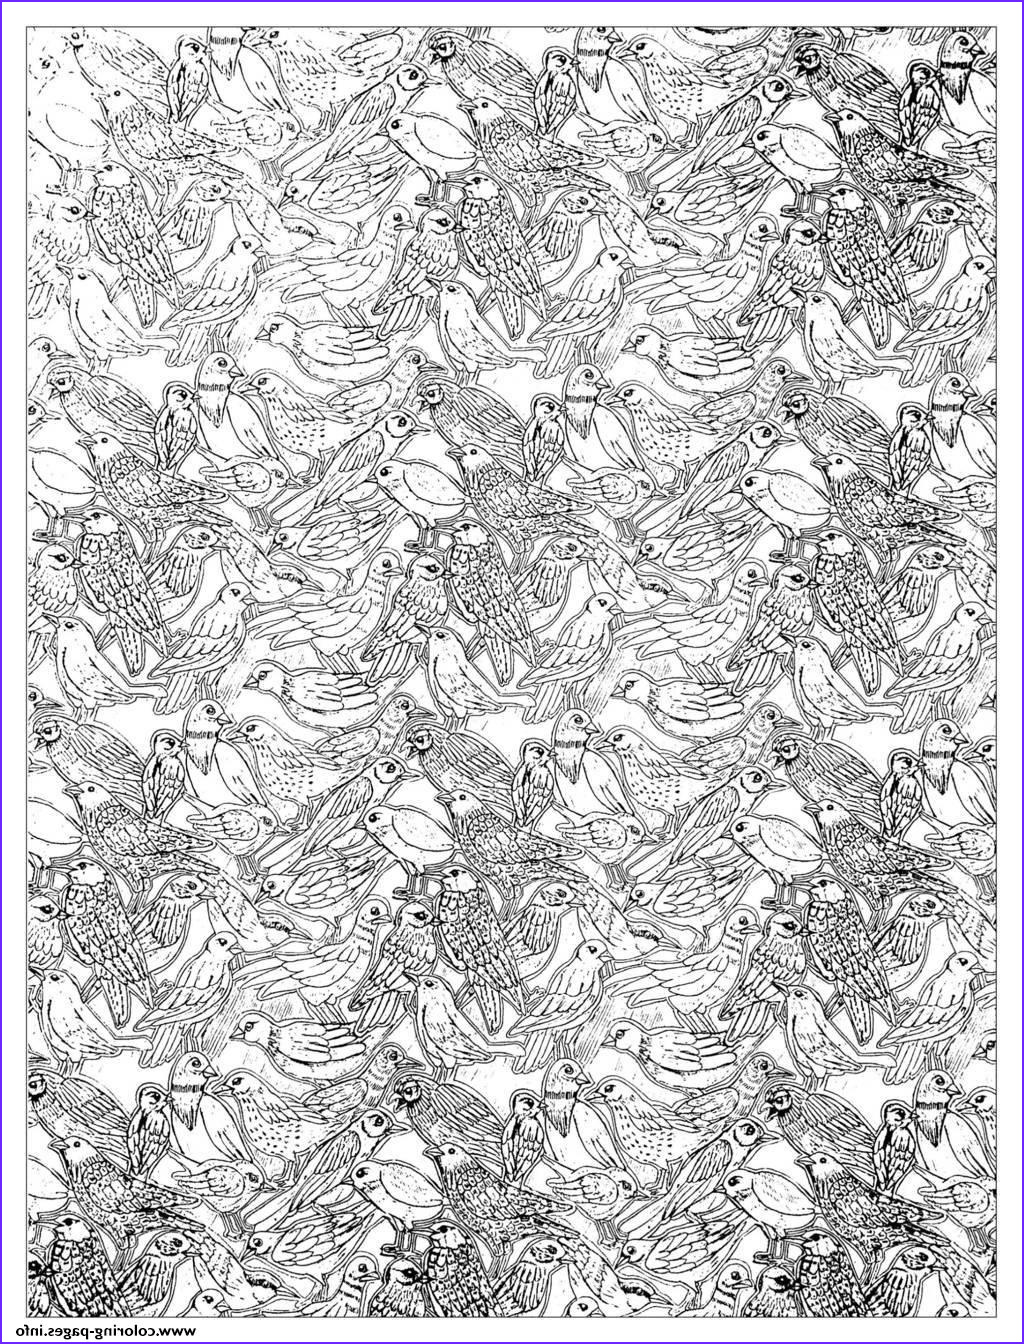 Complicated Coloring Pages for Adults Luxury Photography Adult Plenty Birds Plex Coloring Coloring Pages Printable